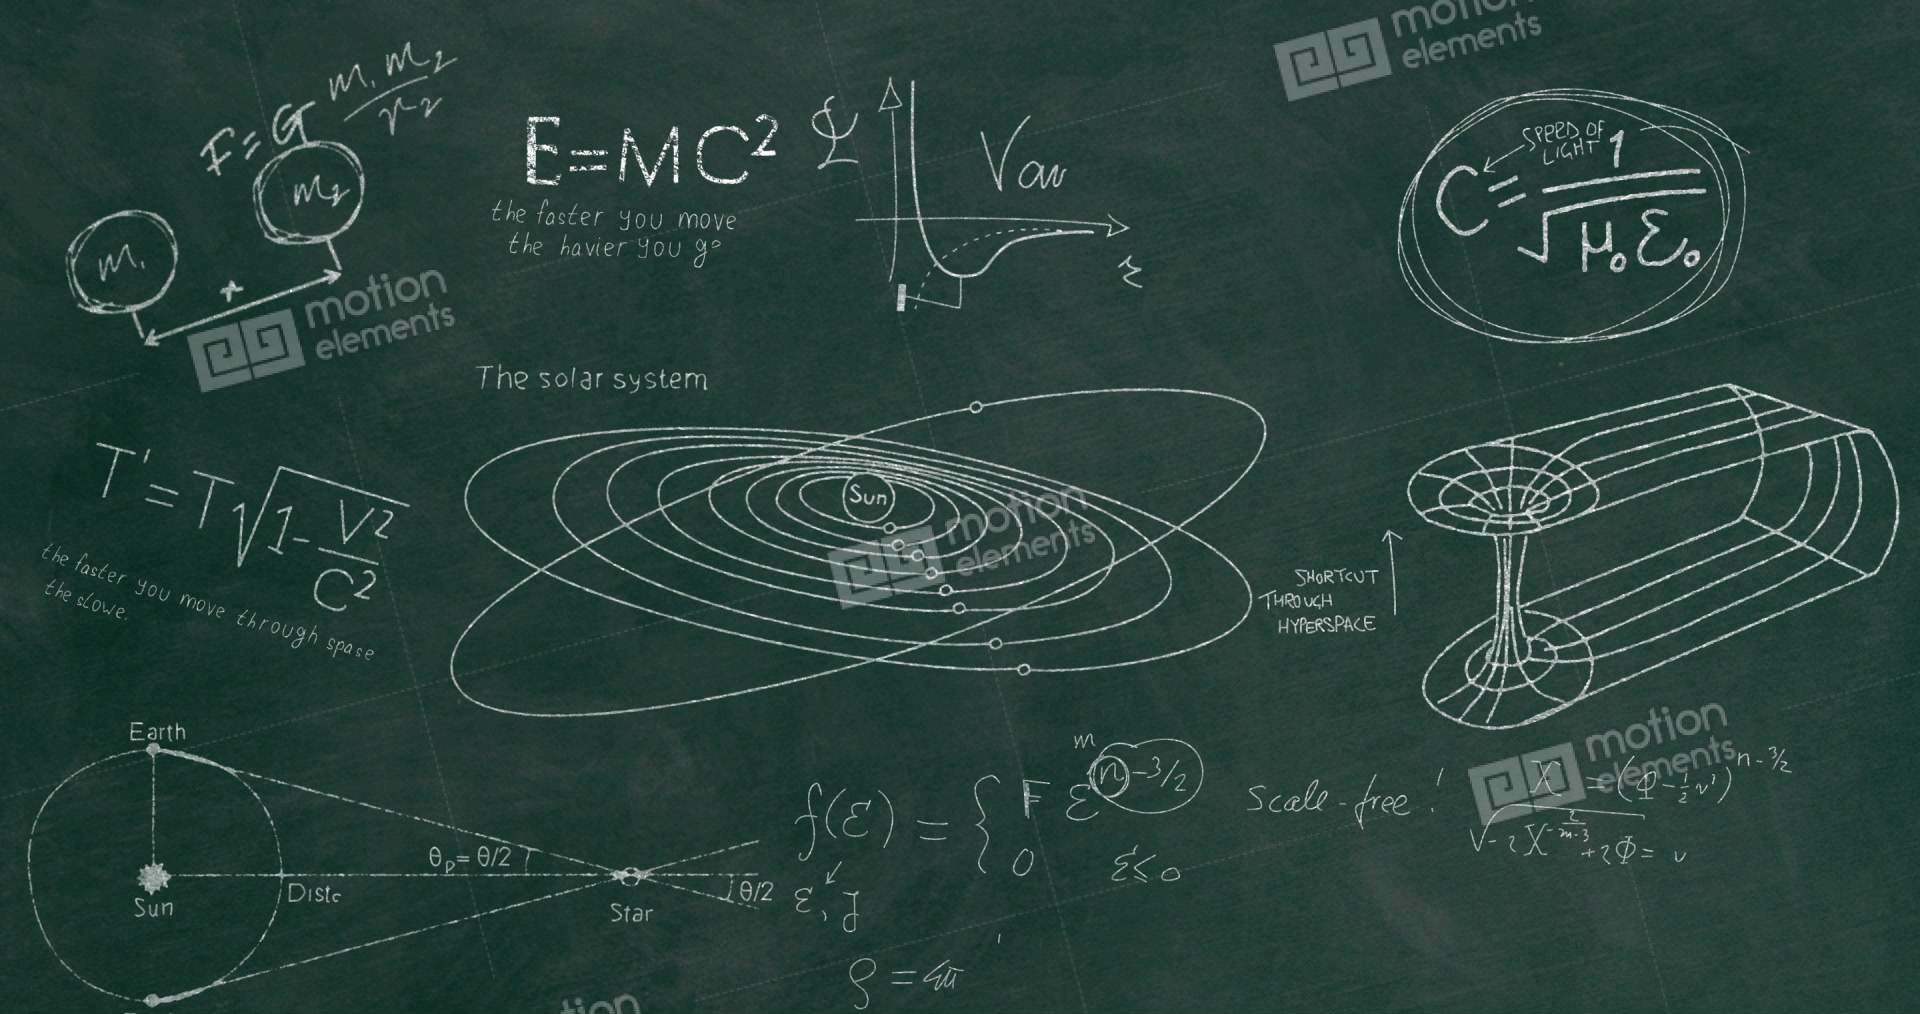 1920x1014 wallpaper.wiki-Chalkboard-math-images-download-PIC-WPD0010985